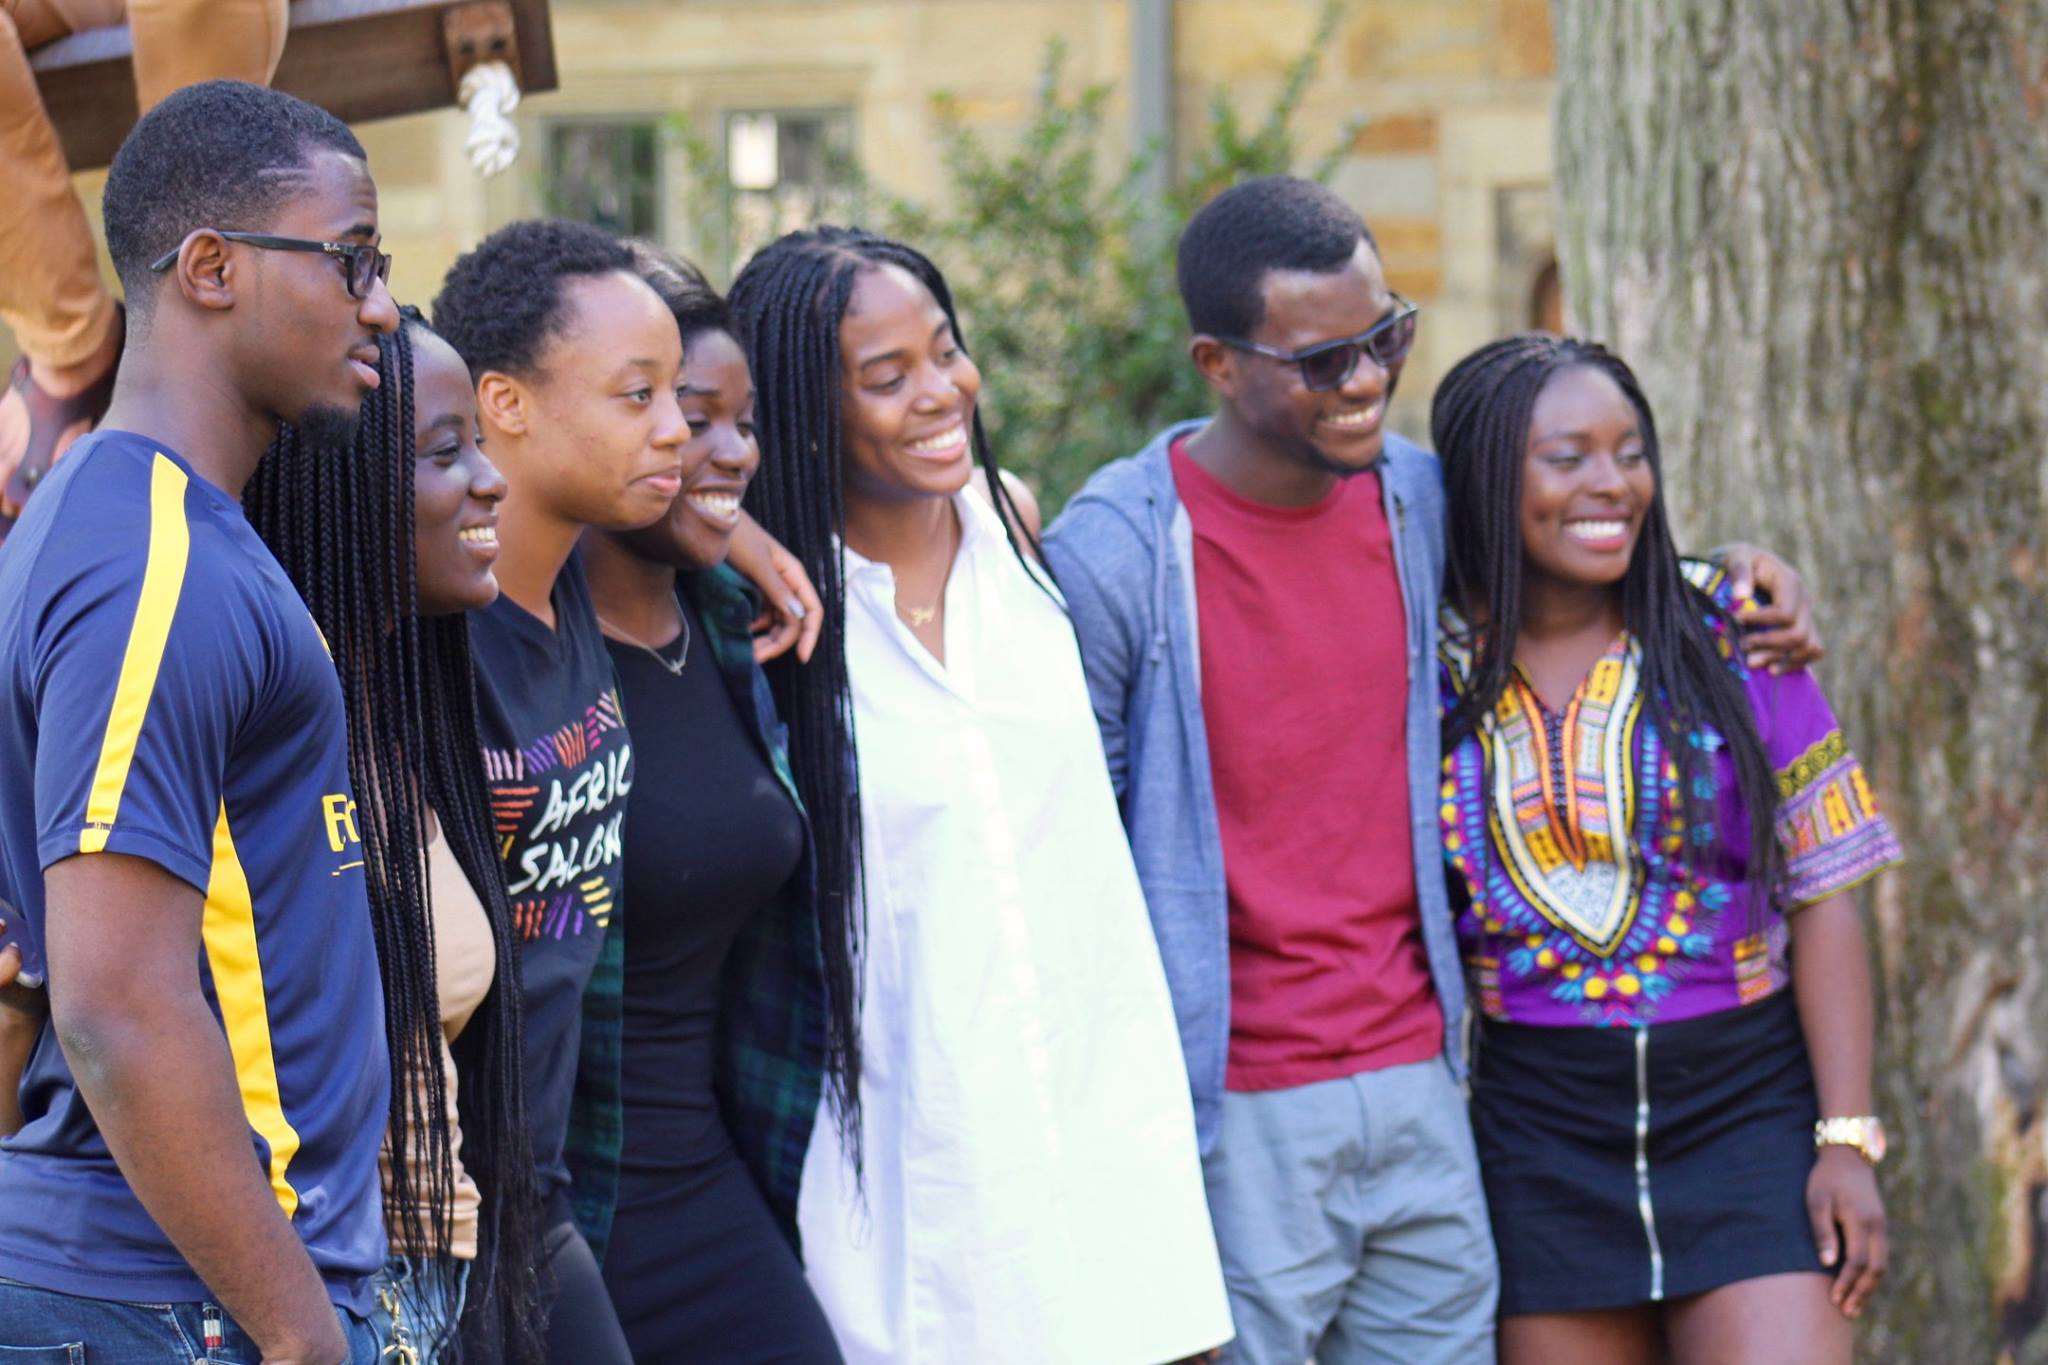 Prospective Student Events - Yale SOM hosts admissions events in major cities on the continent. Upcoming admissions events are listed here:See Upcoming EventsFollow SOM on InstagramStay Updated on Facebook